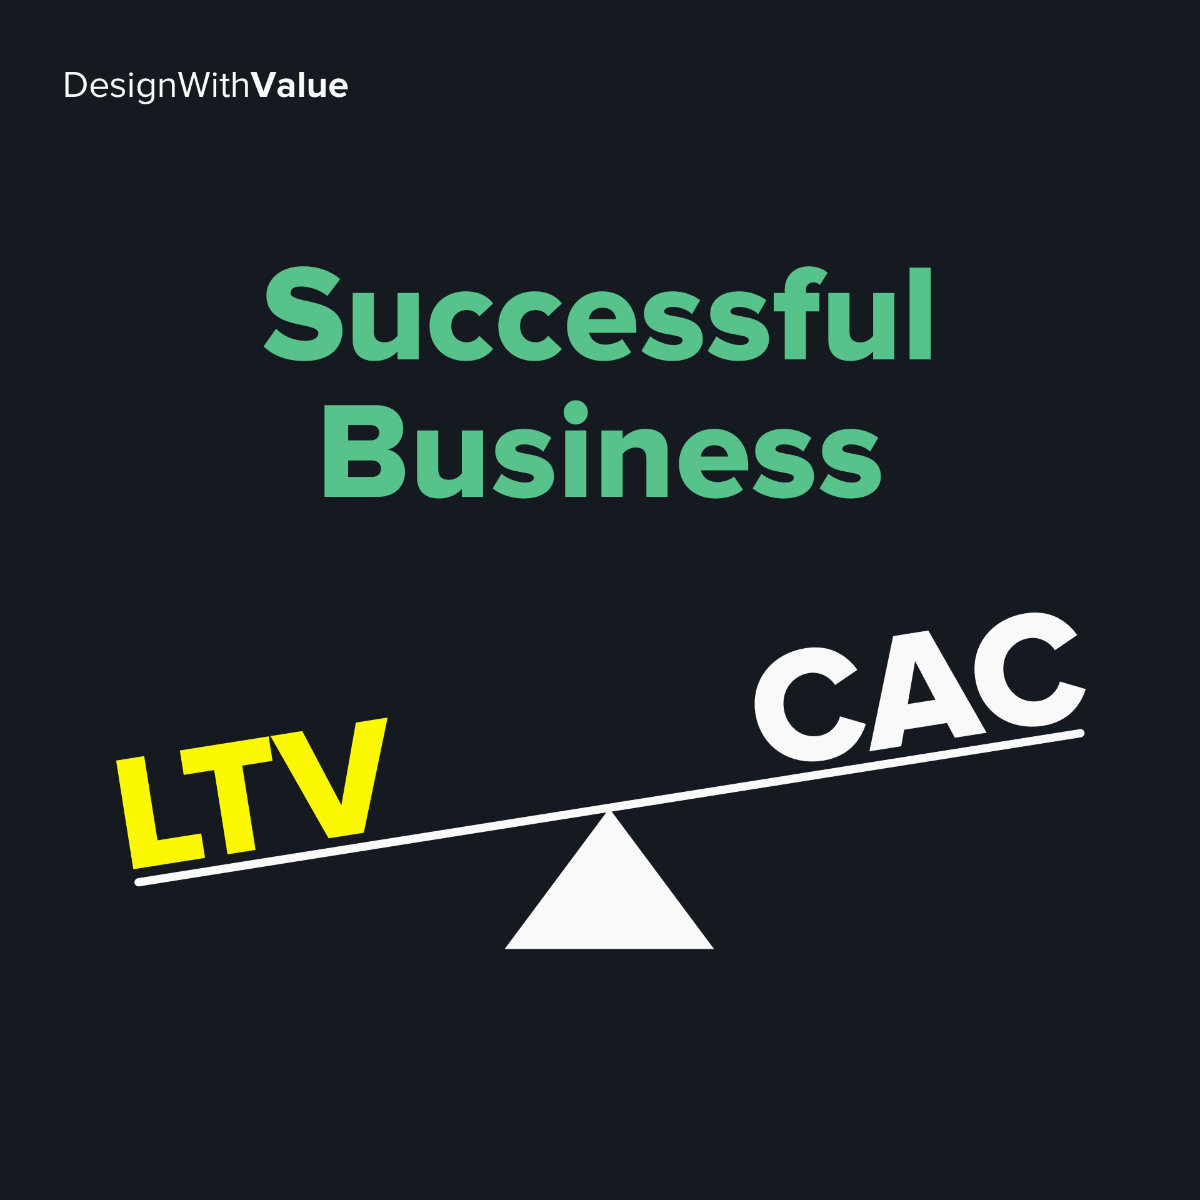 Successful business = LTV overweights CAC